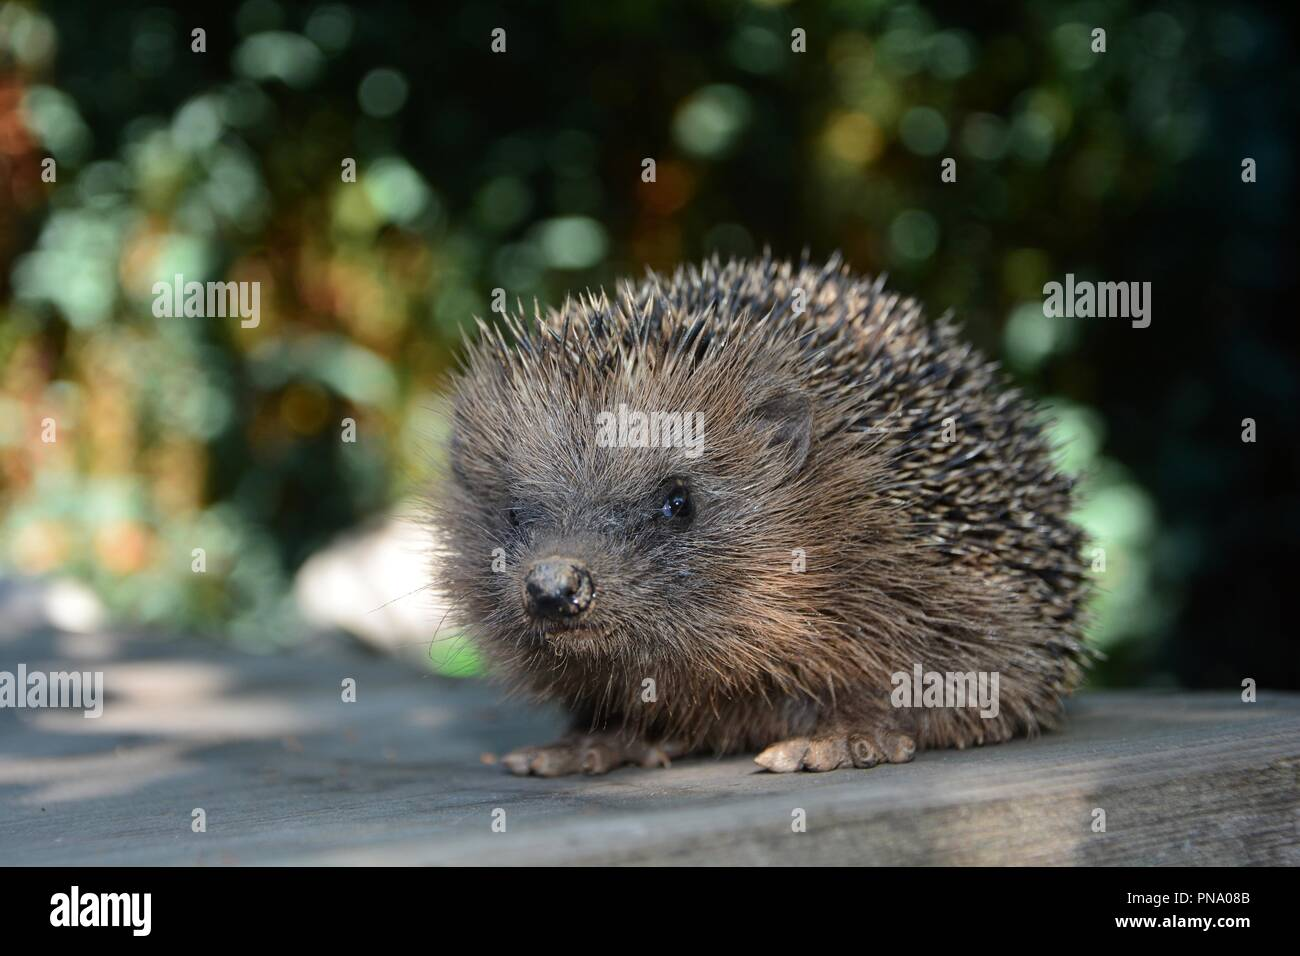 Hedgehog sits on wood in front of green nature - Stock Image